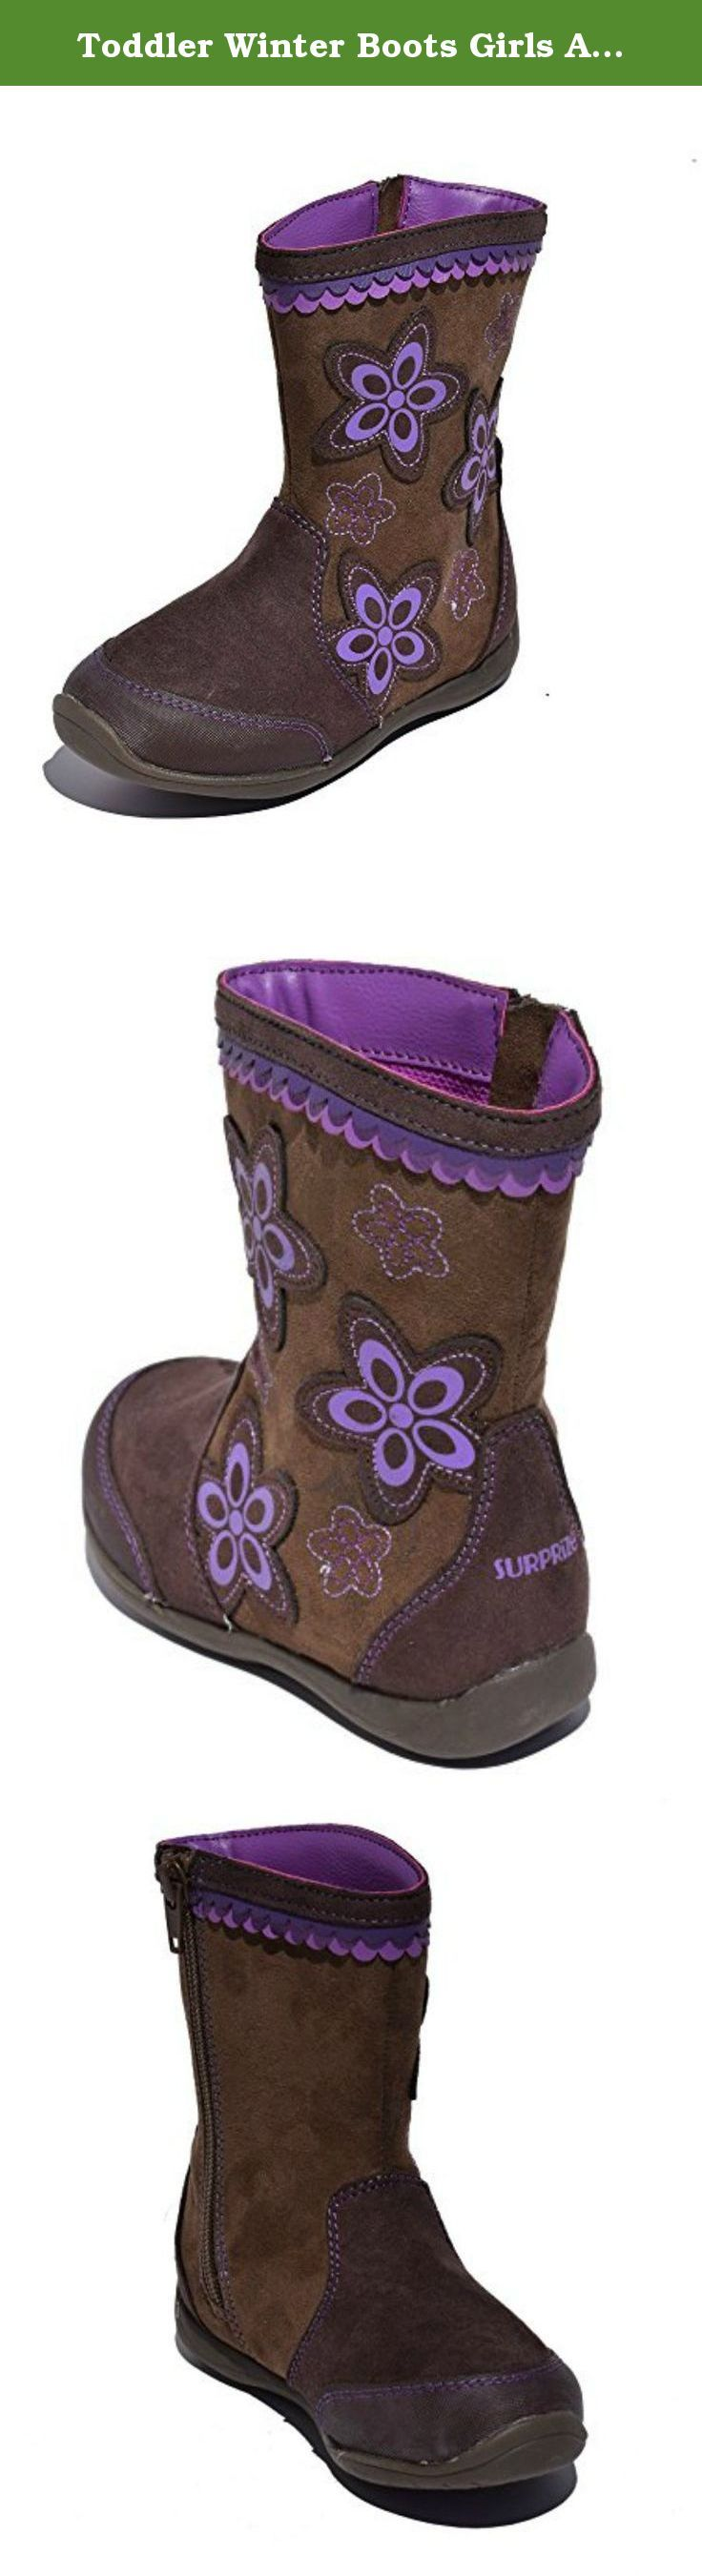 Toddler Winter Boots Girls Ankle Flower Pattern Brown. Why not grab a pair of these Toddler Winter Boots Girls Ankle Flower Pattern Brown ? Simply put, Toddler Winter Boots Girls Ankle Flower Pattern Brown are superior to similar products: - These toddler winter boots look fantastic and have a great style. - Your little girl will feel confidant and special in these toddler winter boots. - These toddler ankle boots have fine craftsmanship and are built to last. - Every girl deserves a pair…